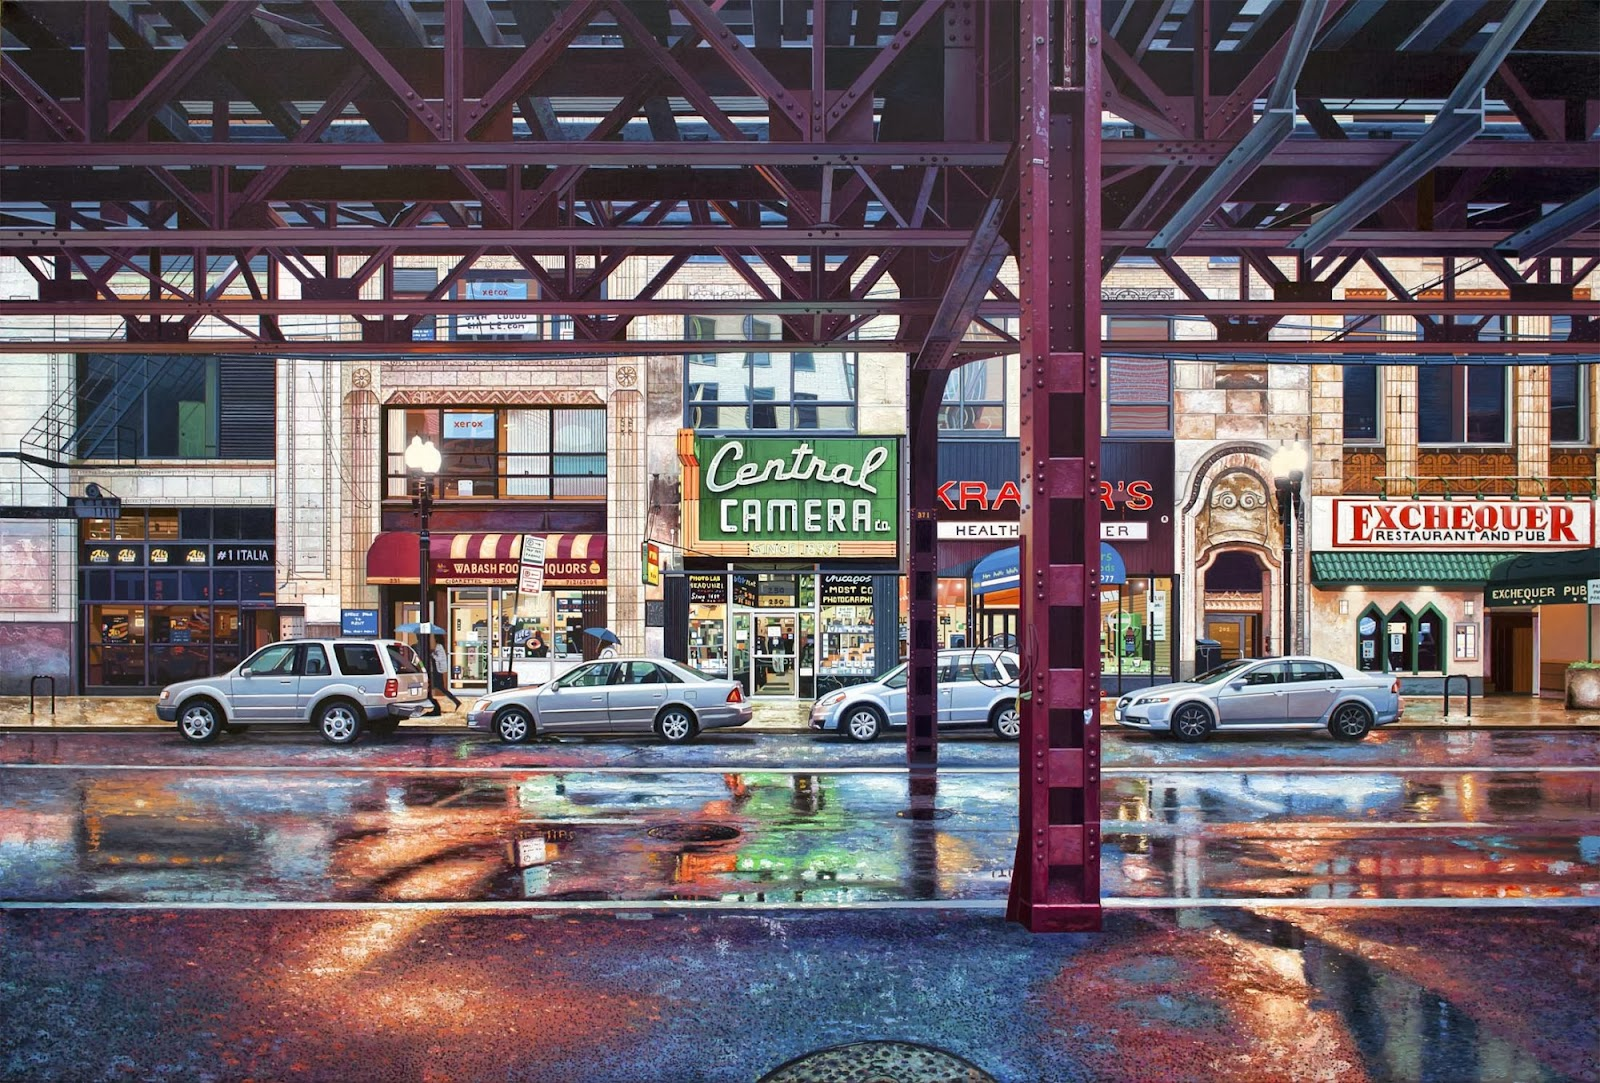 18-Nathan-Walsh-Hyper-Realistic-Cityscapes-Paintings-www-designstack-co